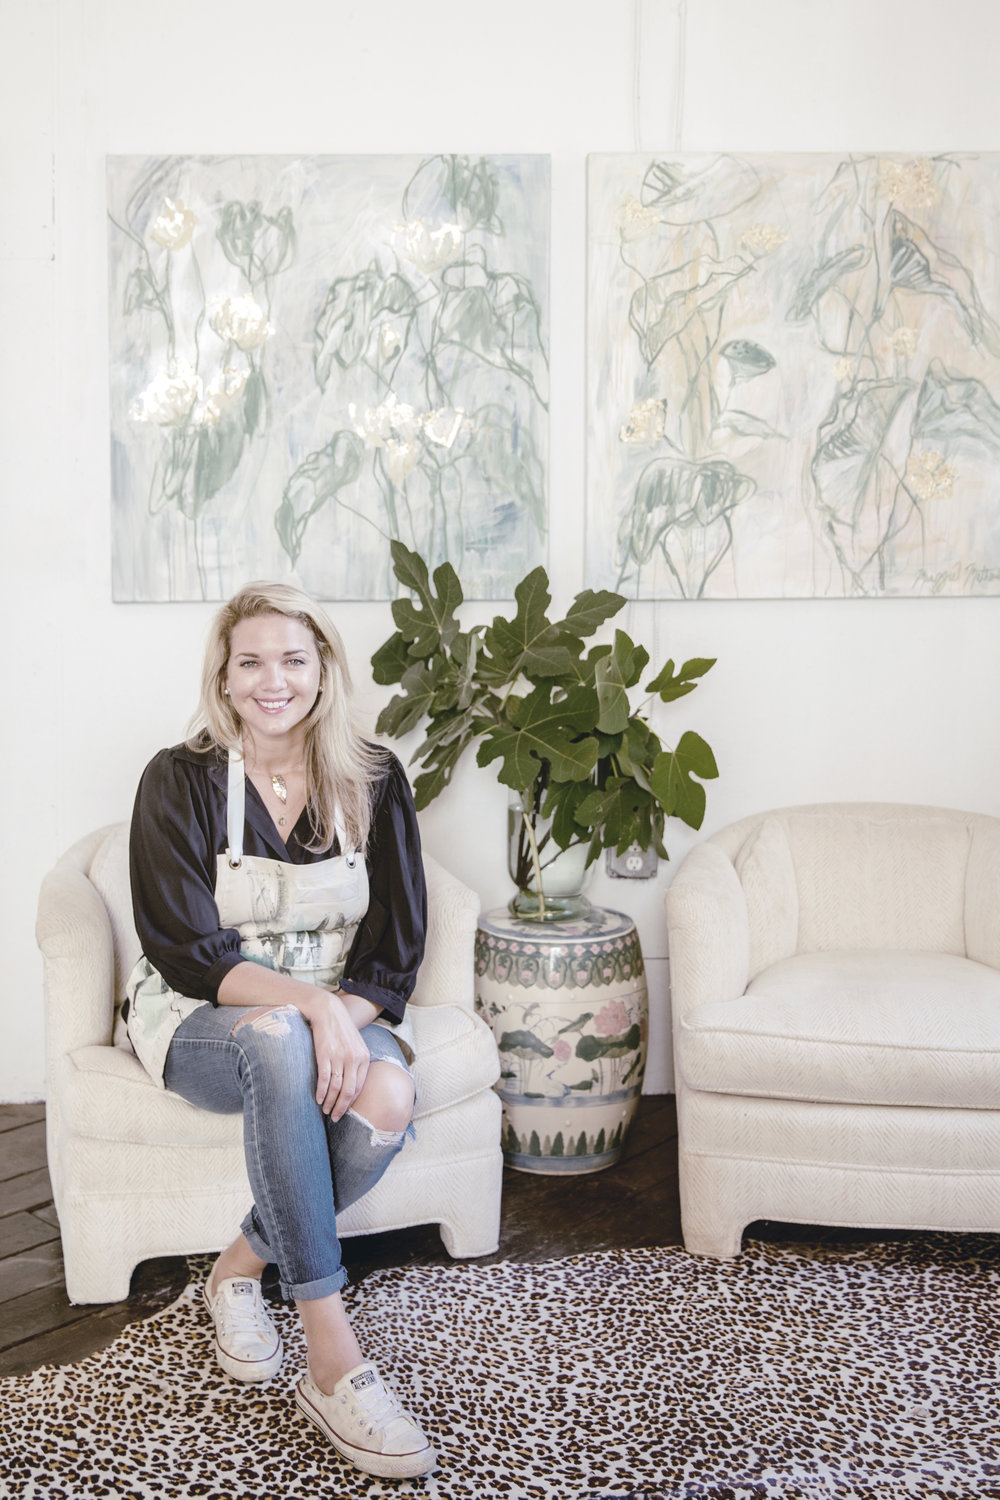 MEET ARTIST MAGGIE MATHEWS